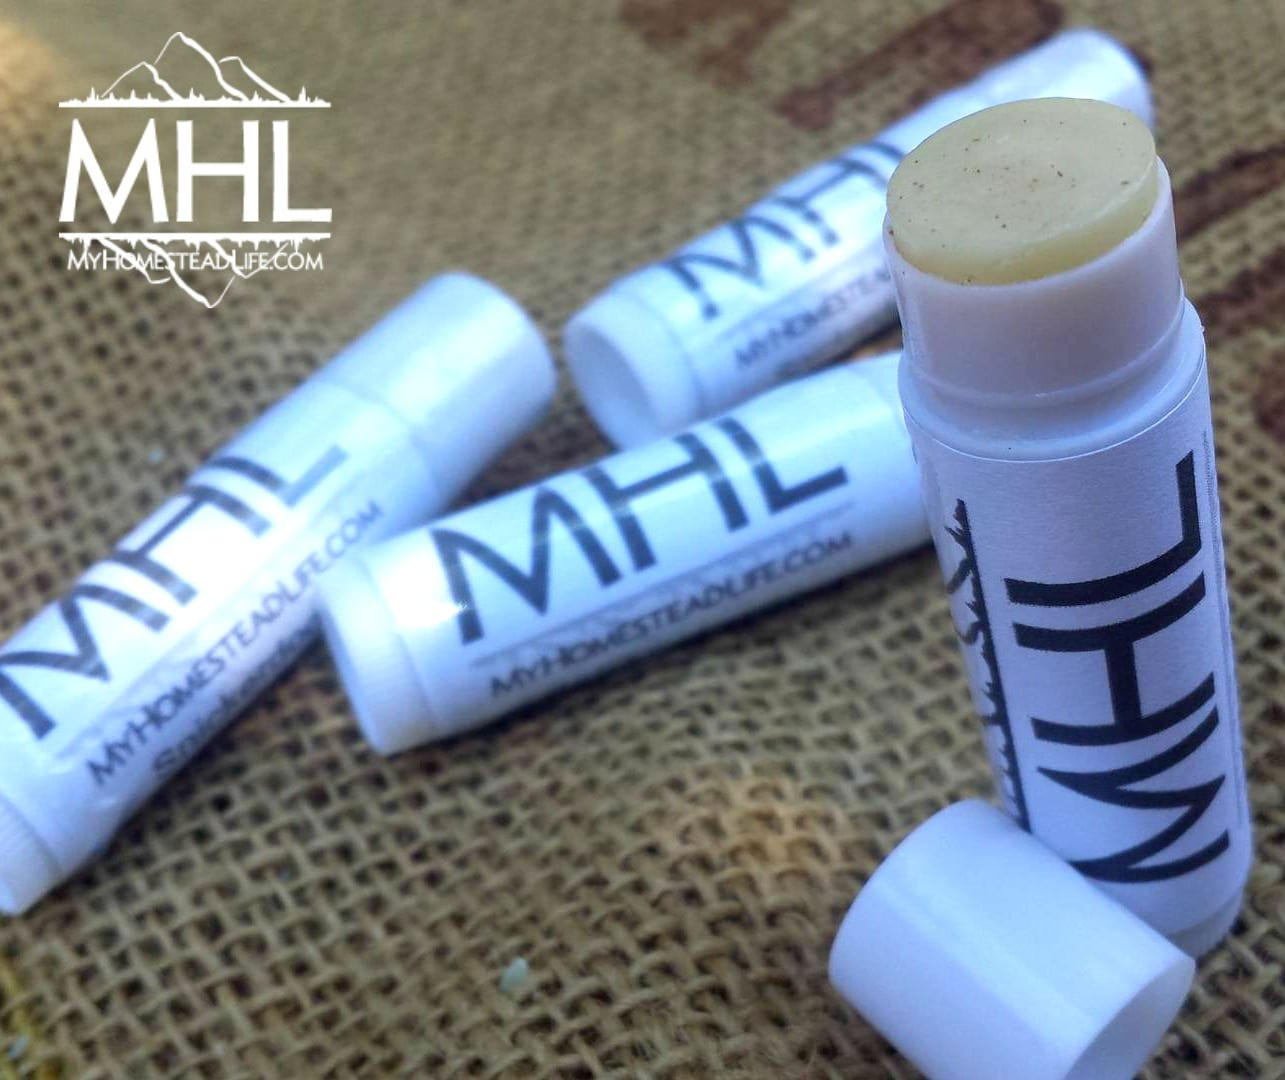 Handcrafted All-Natural Lip Balm by My Homestead Life www.myhomesteadlife.com/shop